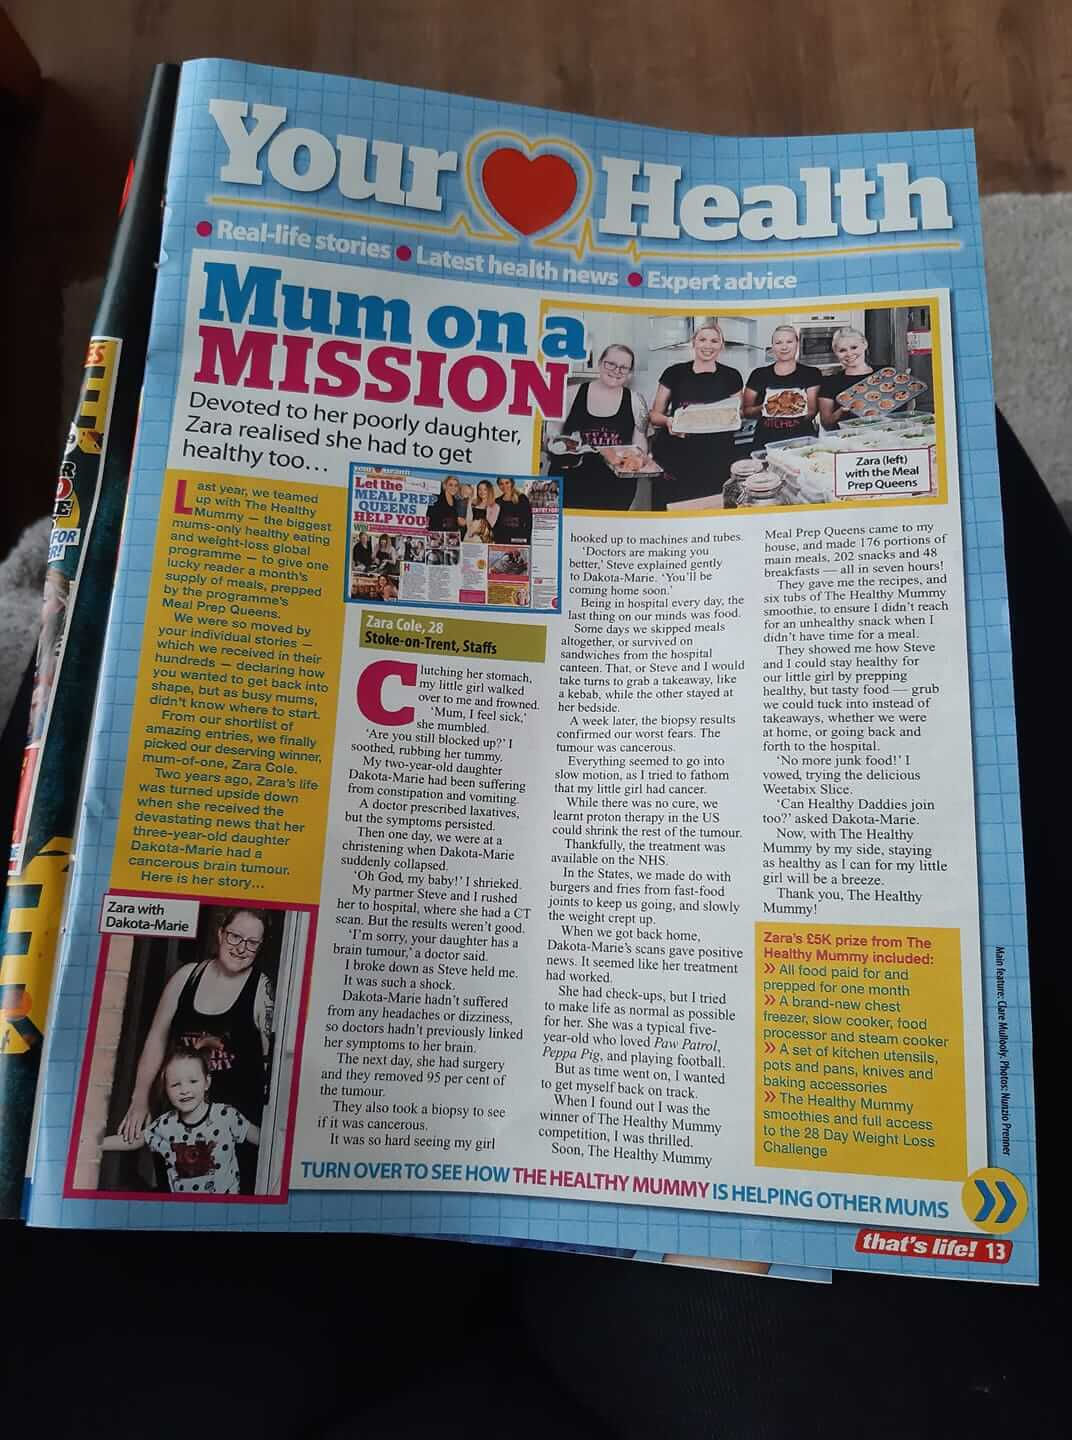 The-Healthy-Mummy-Thats-Life-Magazine-Article